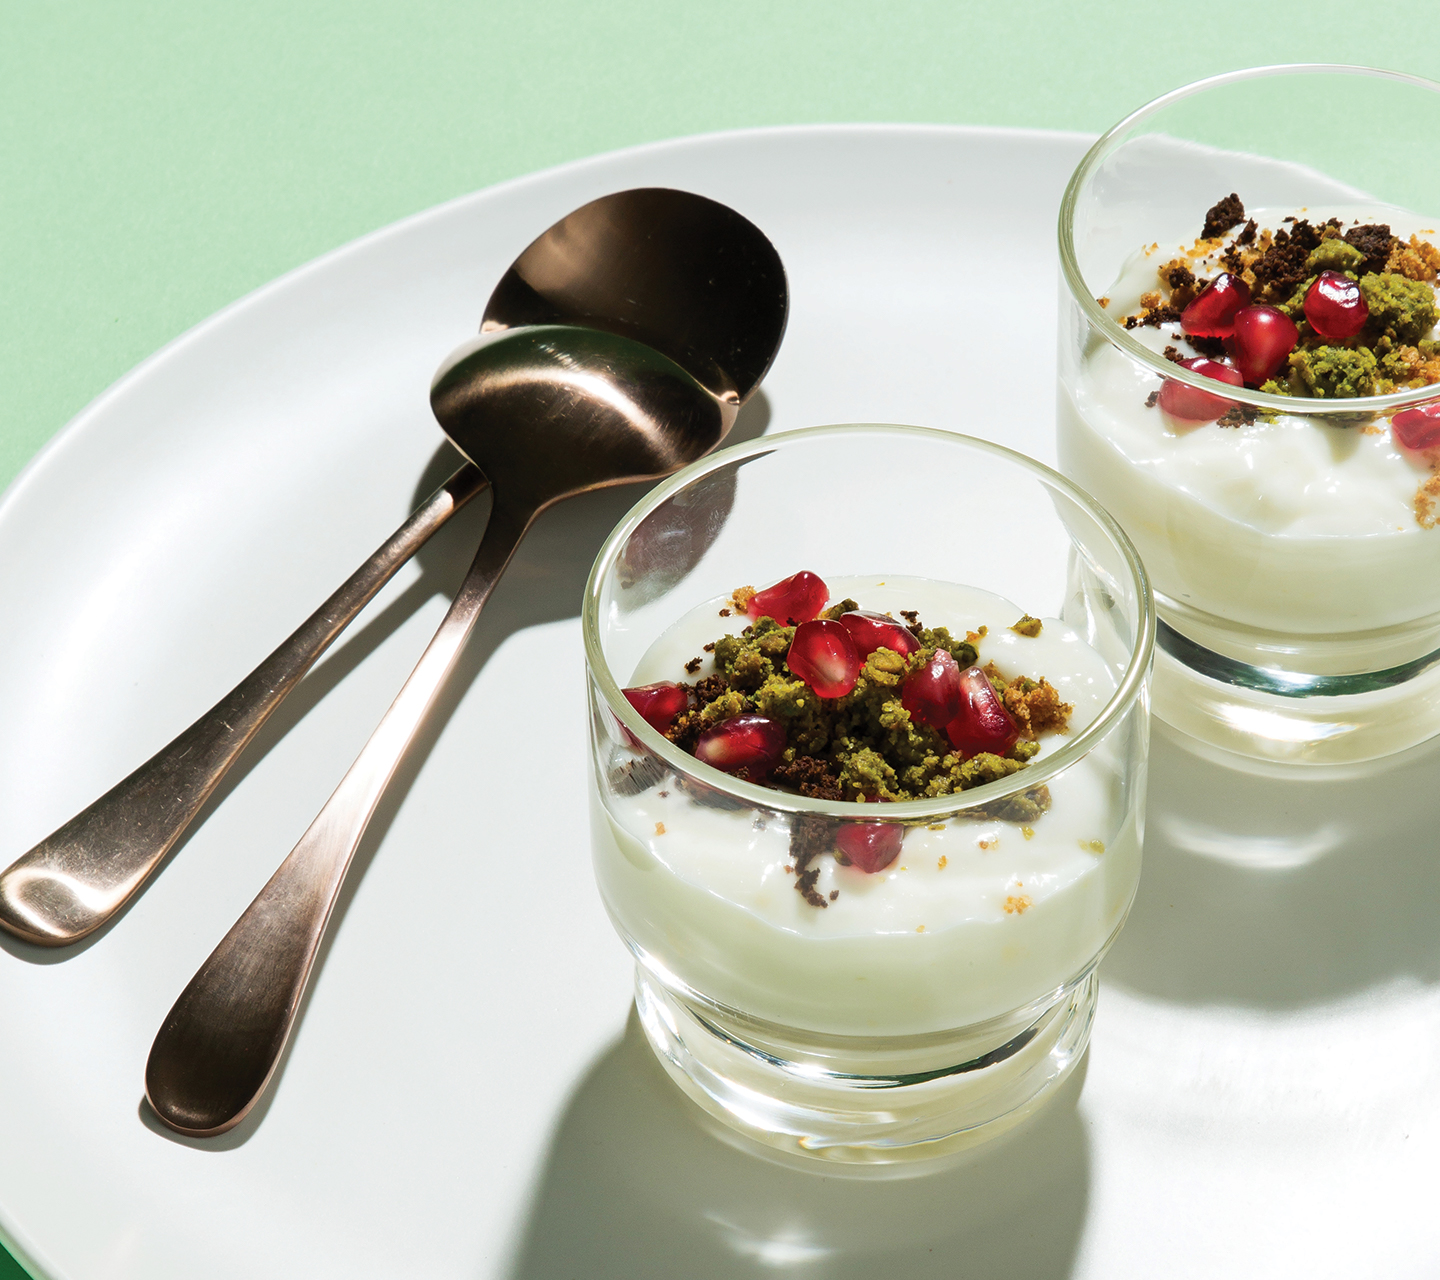 Lemongrass Panna Cotta by Cuisine Solutions